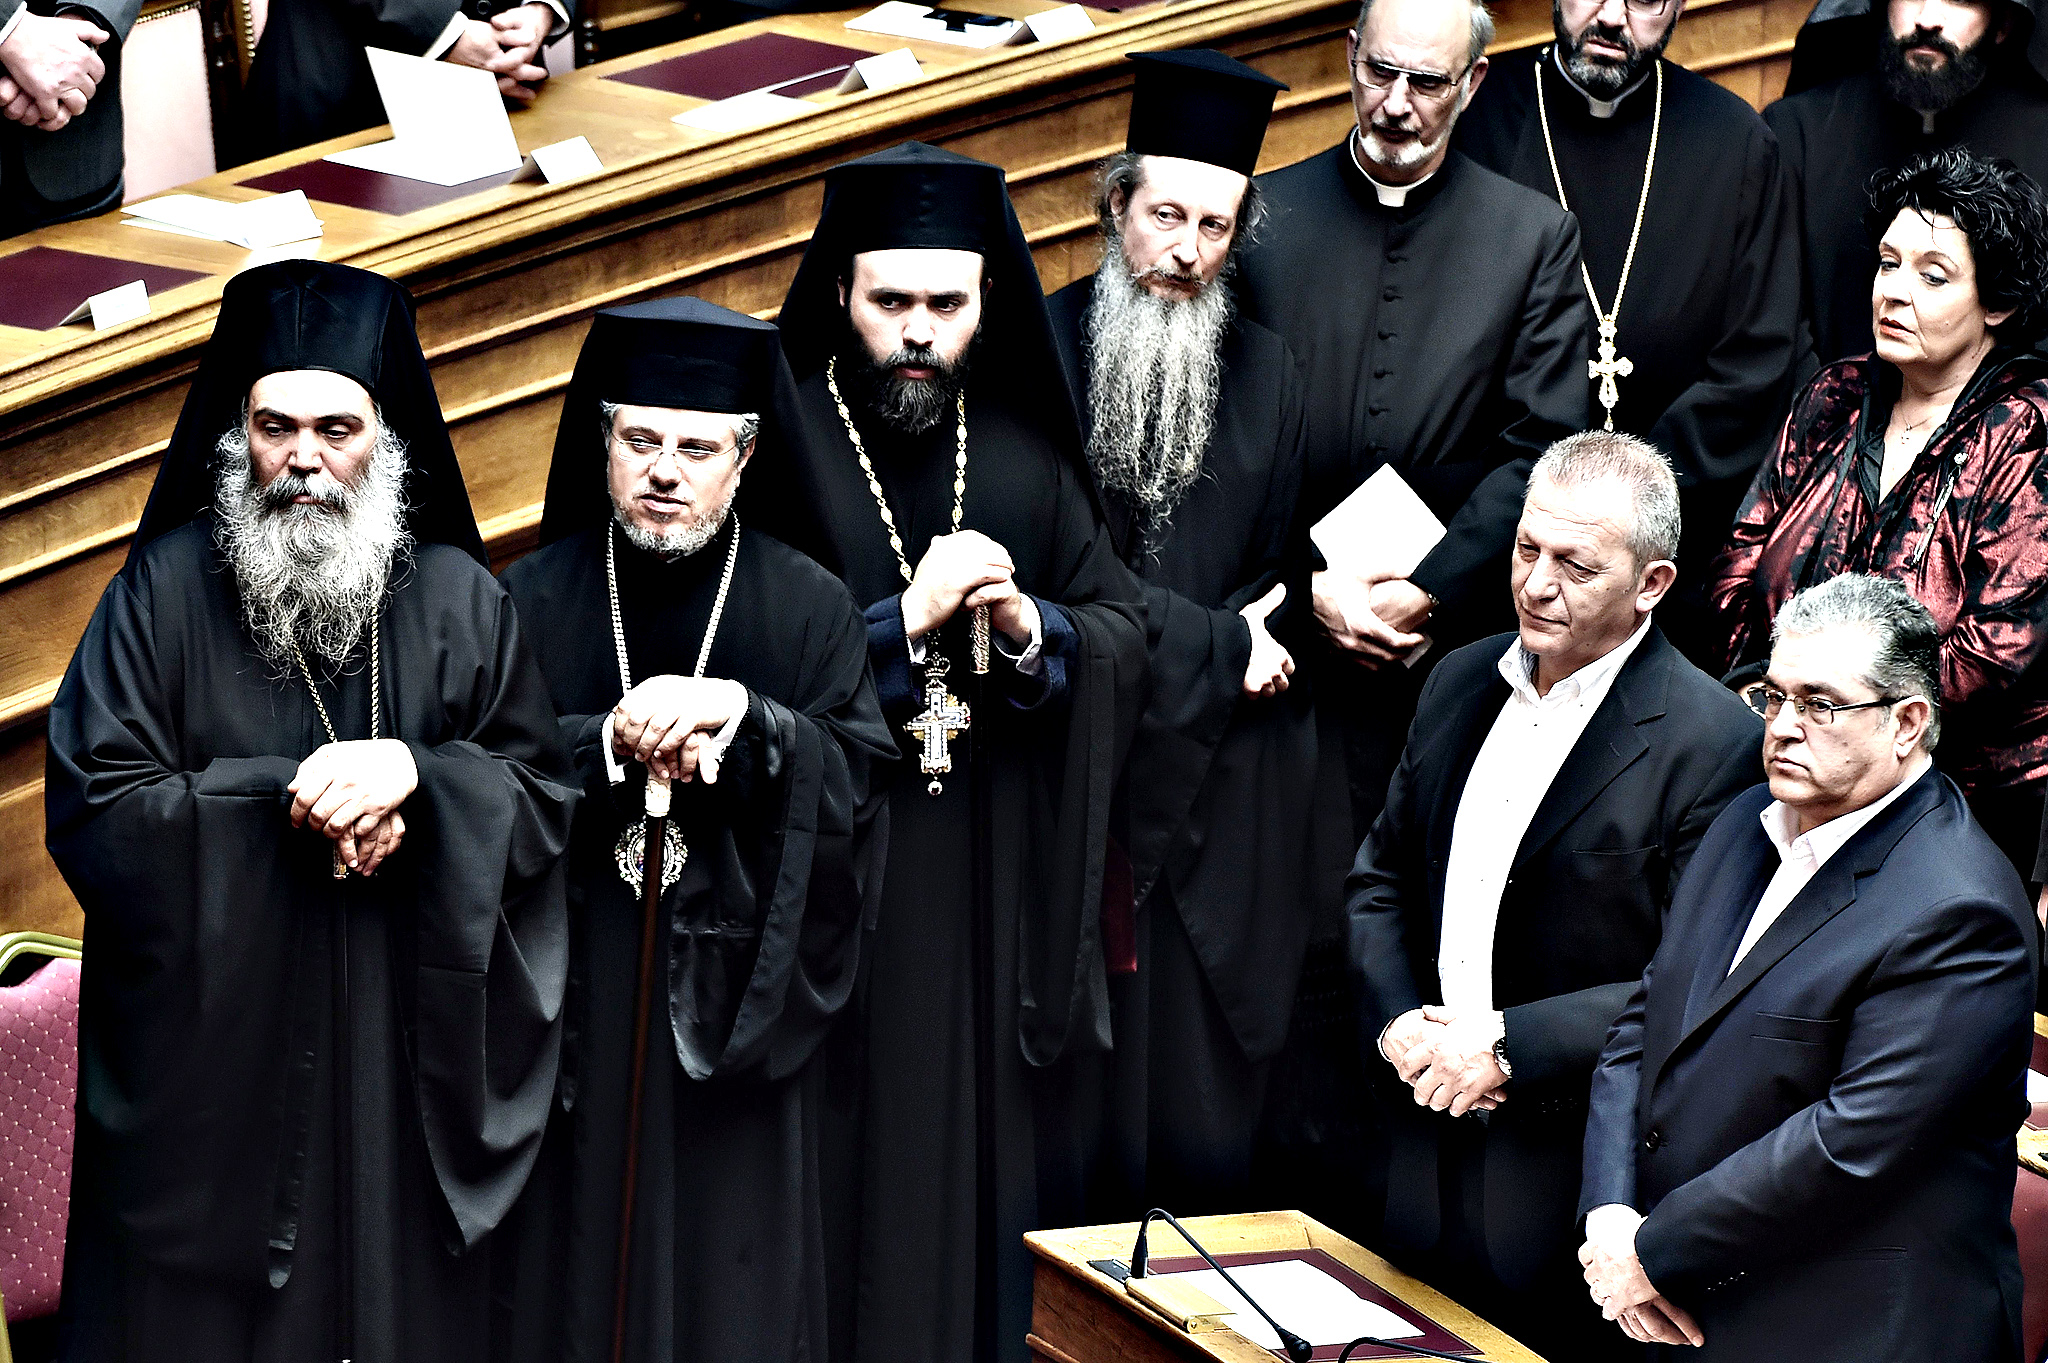 Dimitris Koutsoumpas (R), general secretary of the Communist Party of Greece (KKE) and religious officials attend a swearing in ceremony of the new parliament in Athens on February 5, 2015. Greece's parliament met for the first time after last month's election amid market jitters sparked by an ECB block on a key source of funding for Athens' banks.